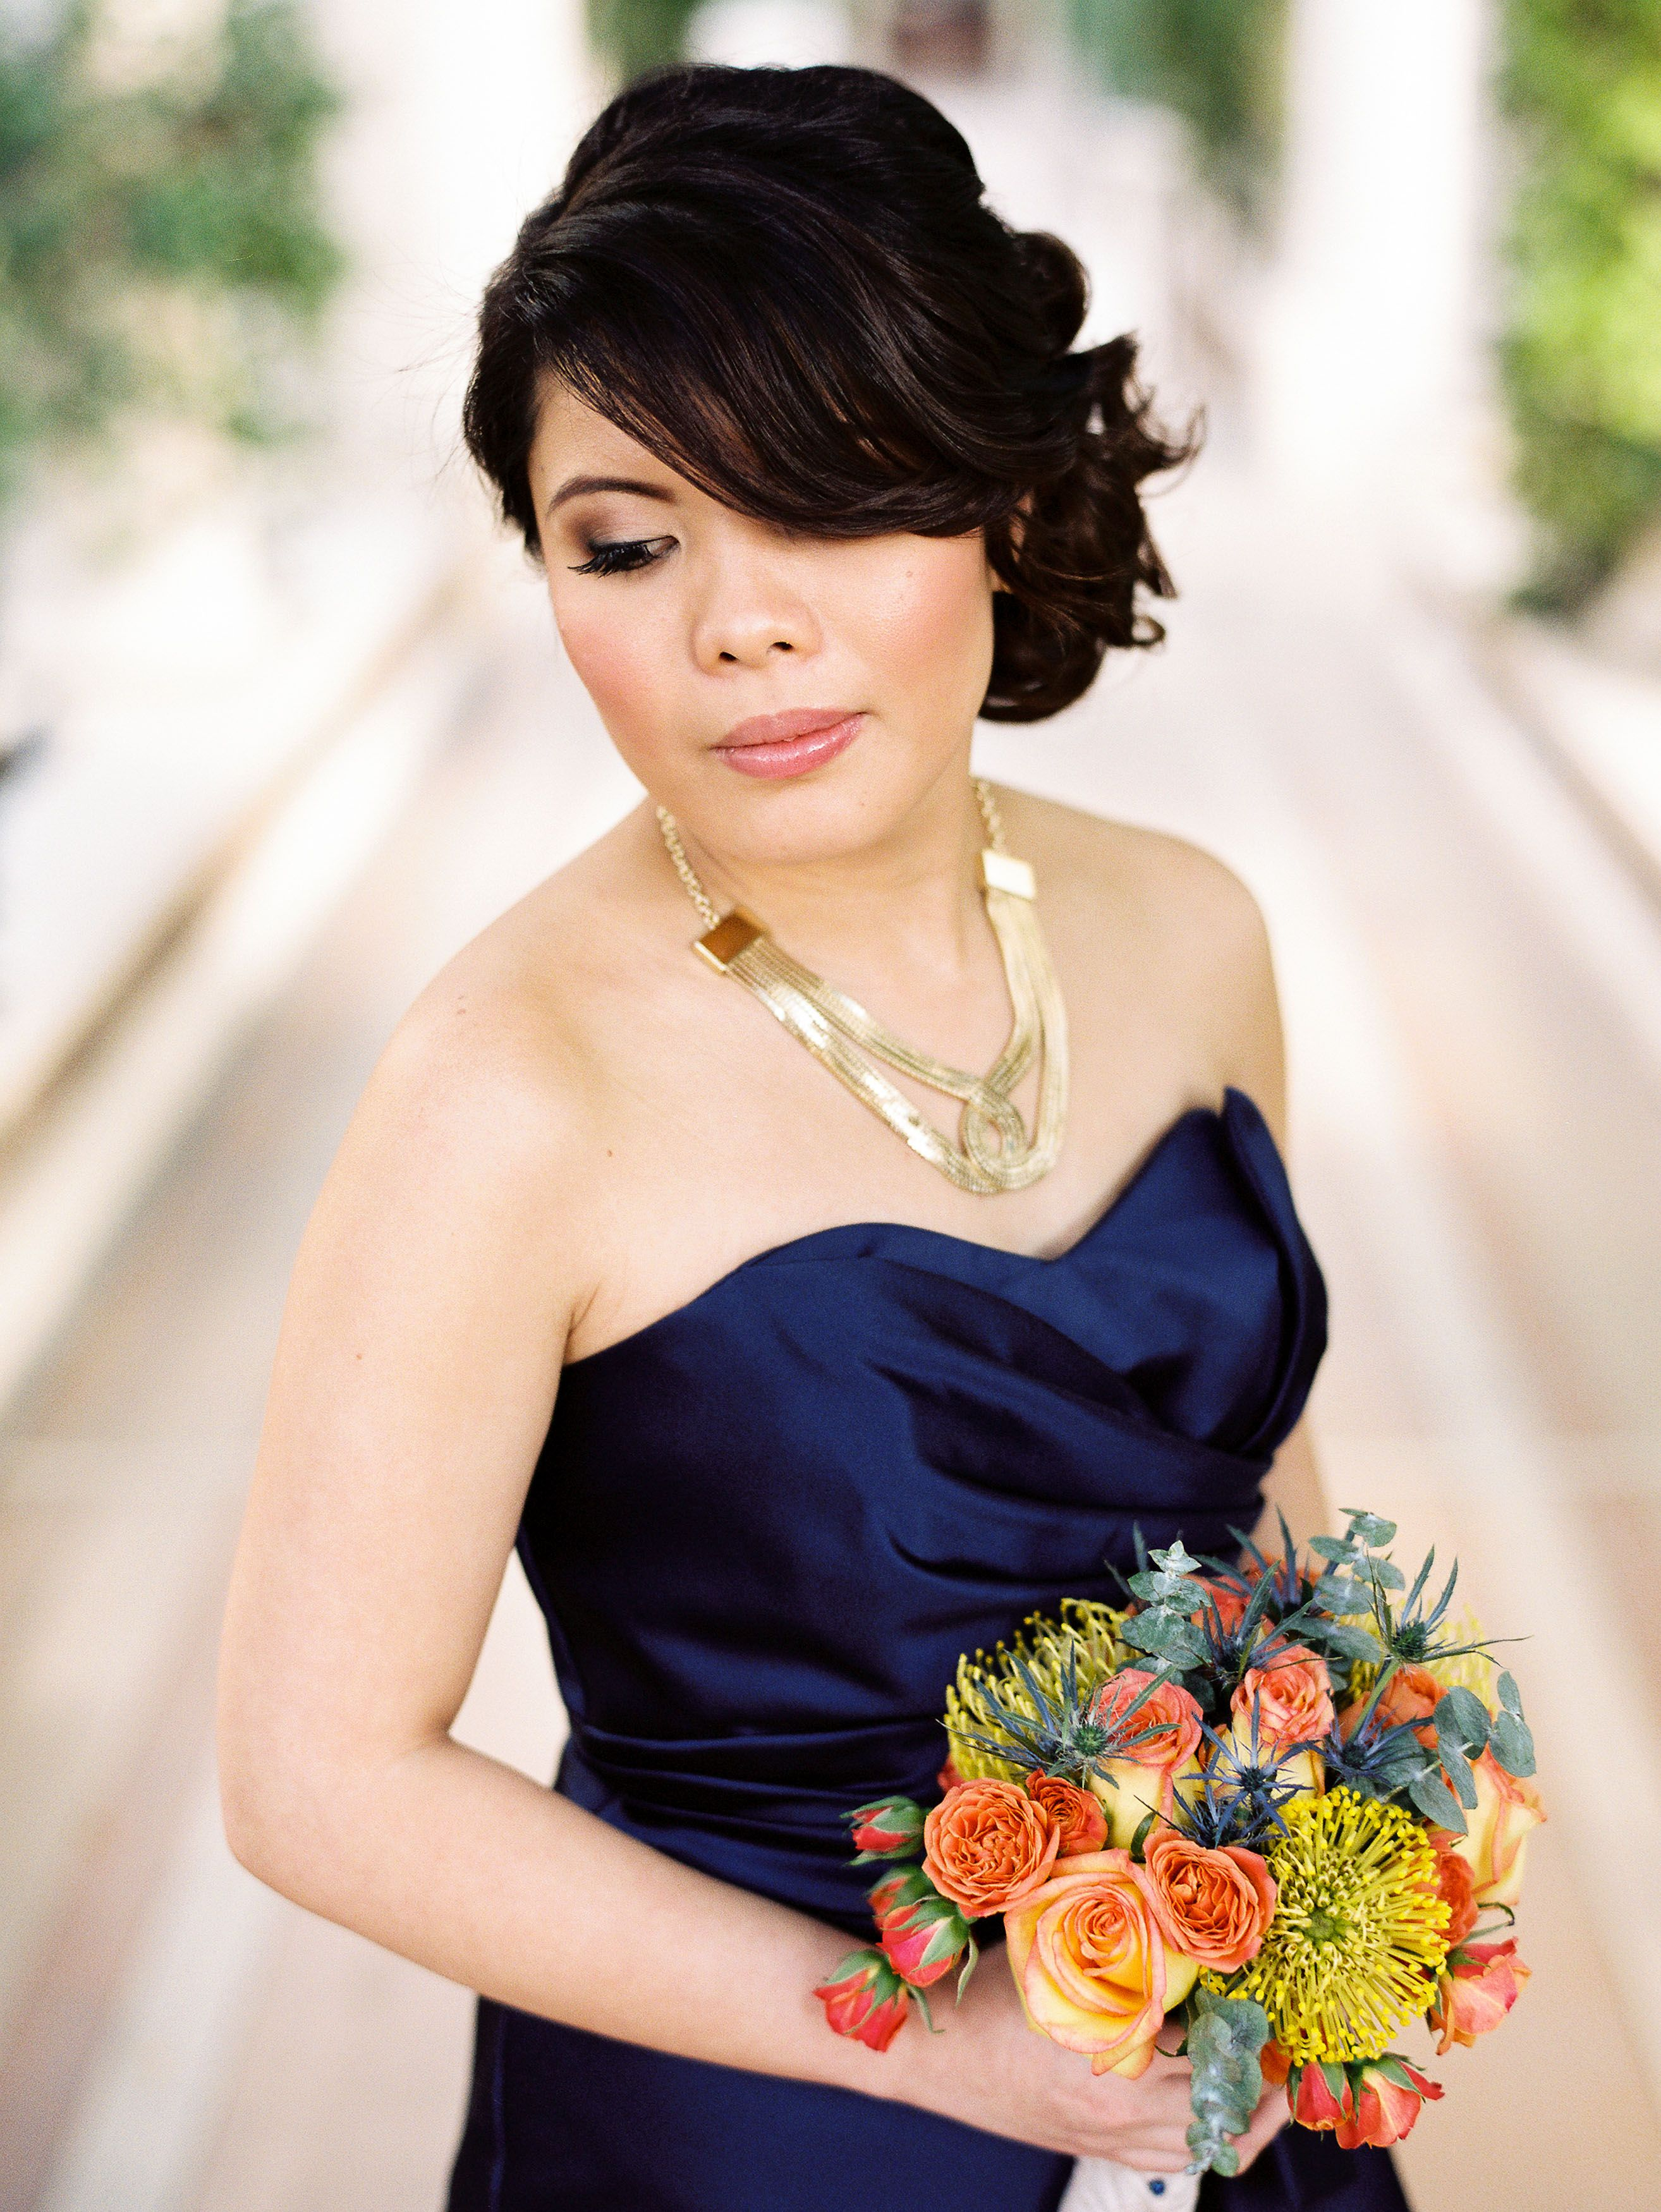 las vegas wedding hair and makeup by amelia c co photography by brian saculles